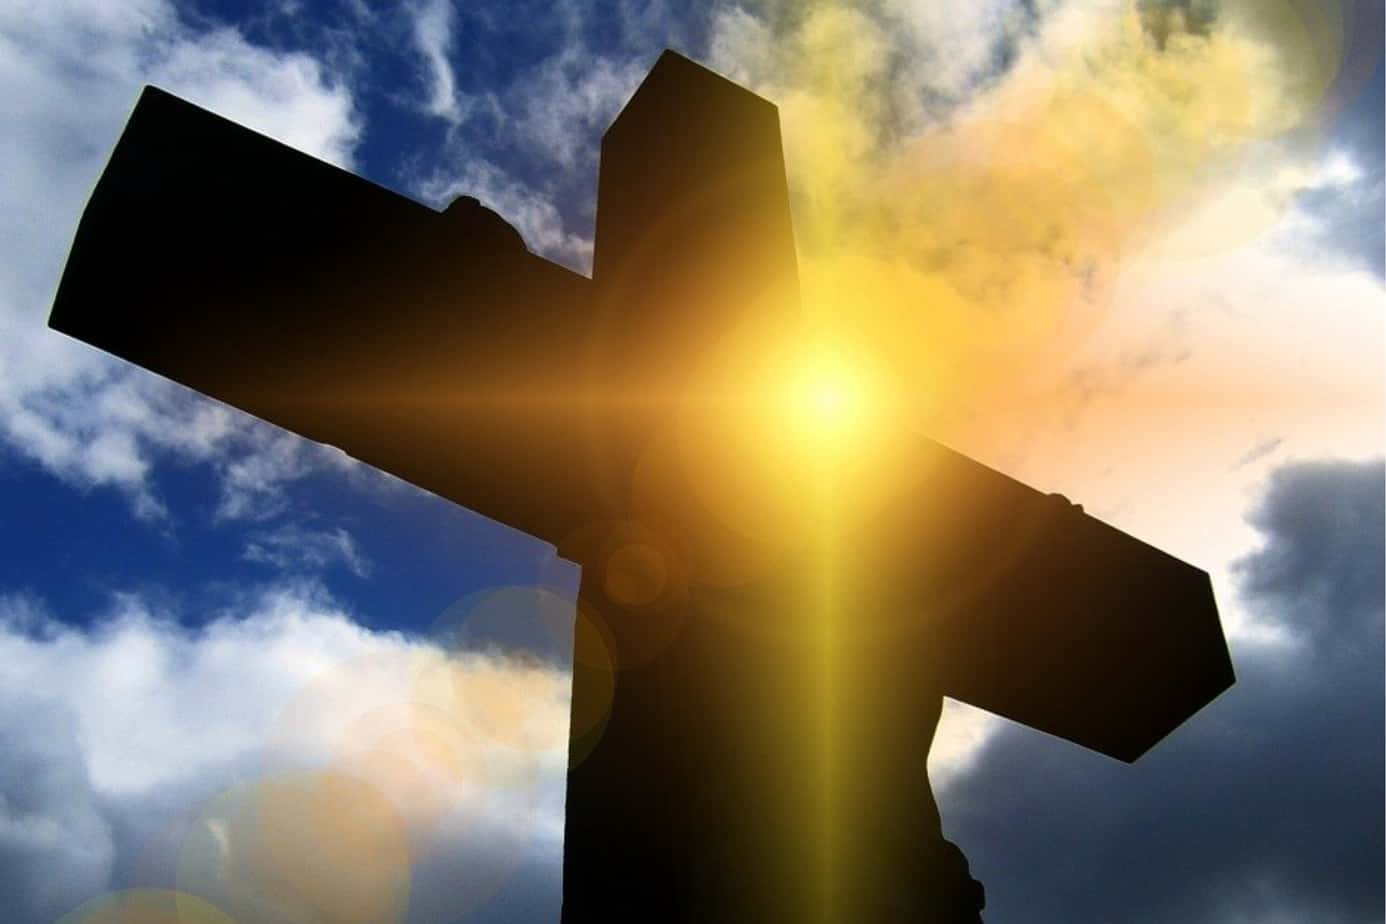 Our Easter Prayer for you – May you know God's resurrection power